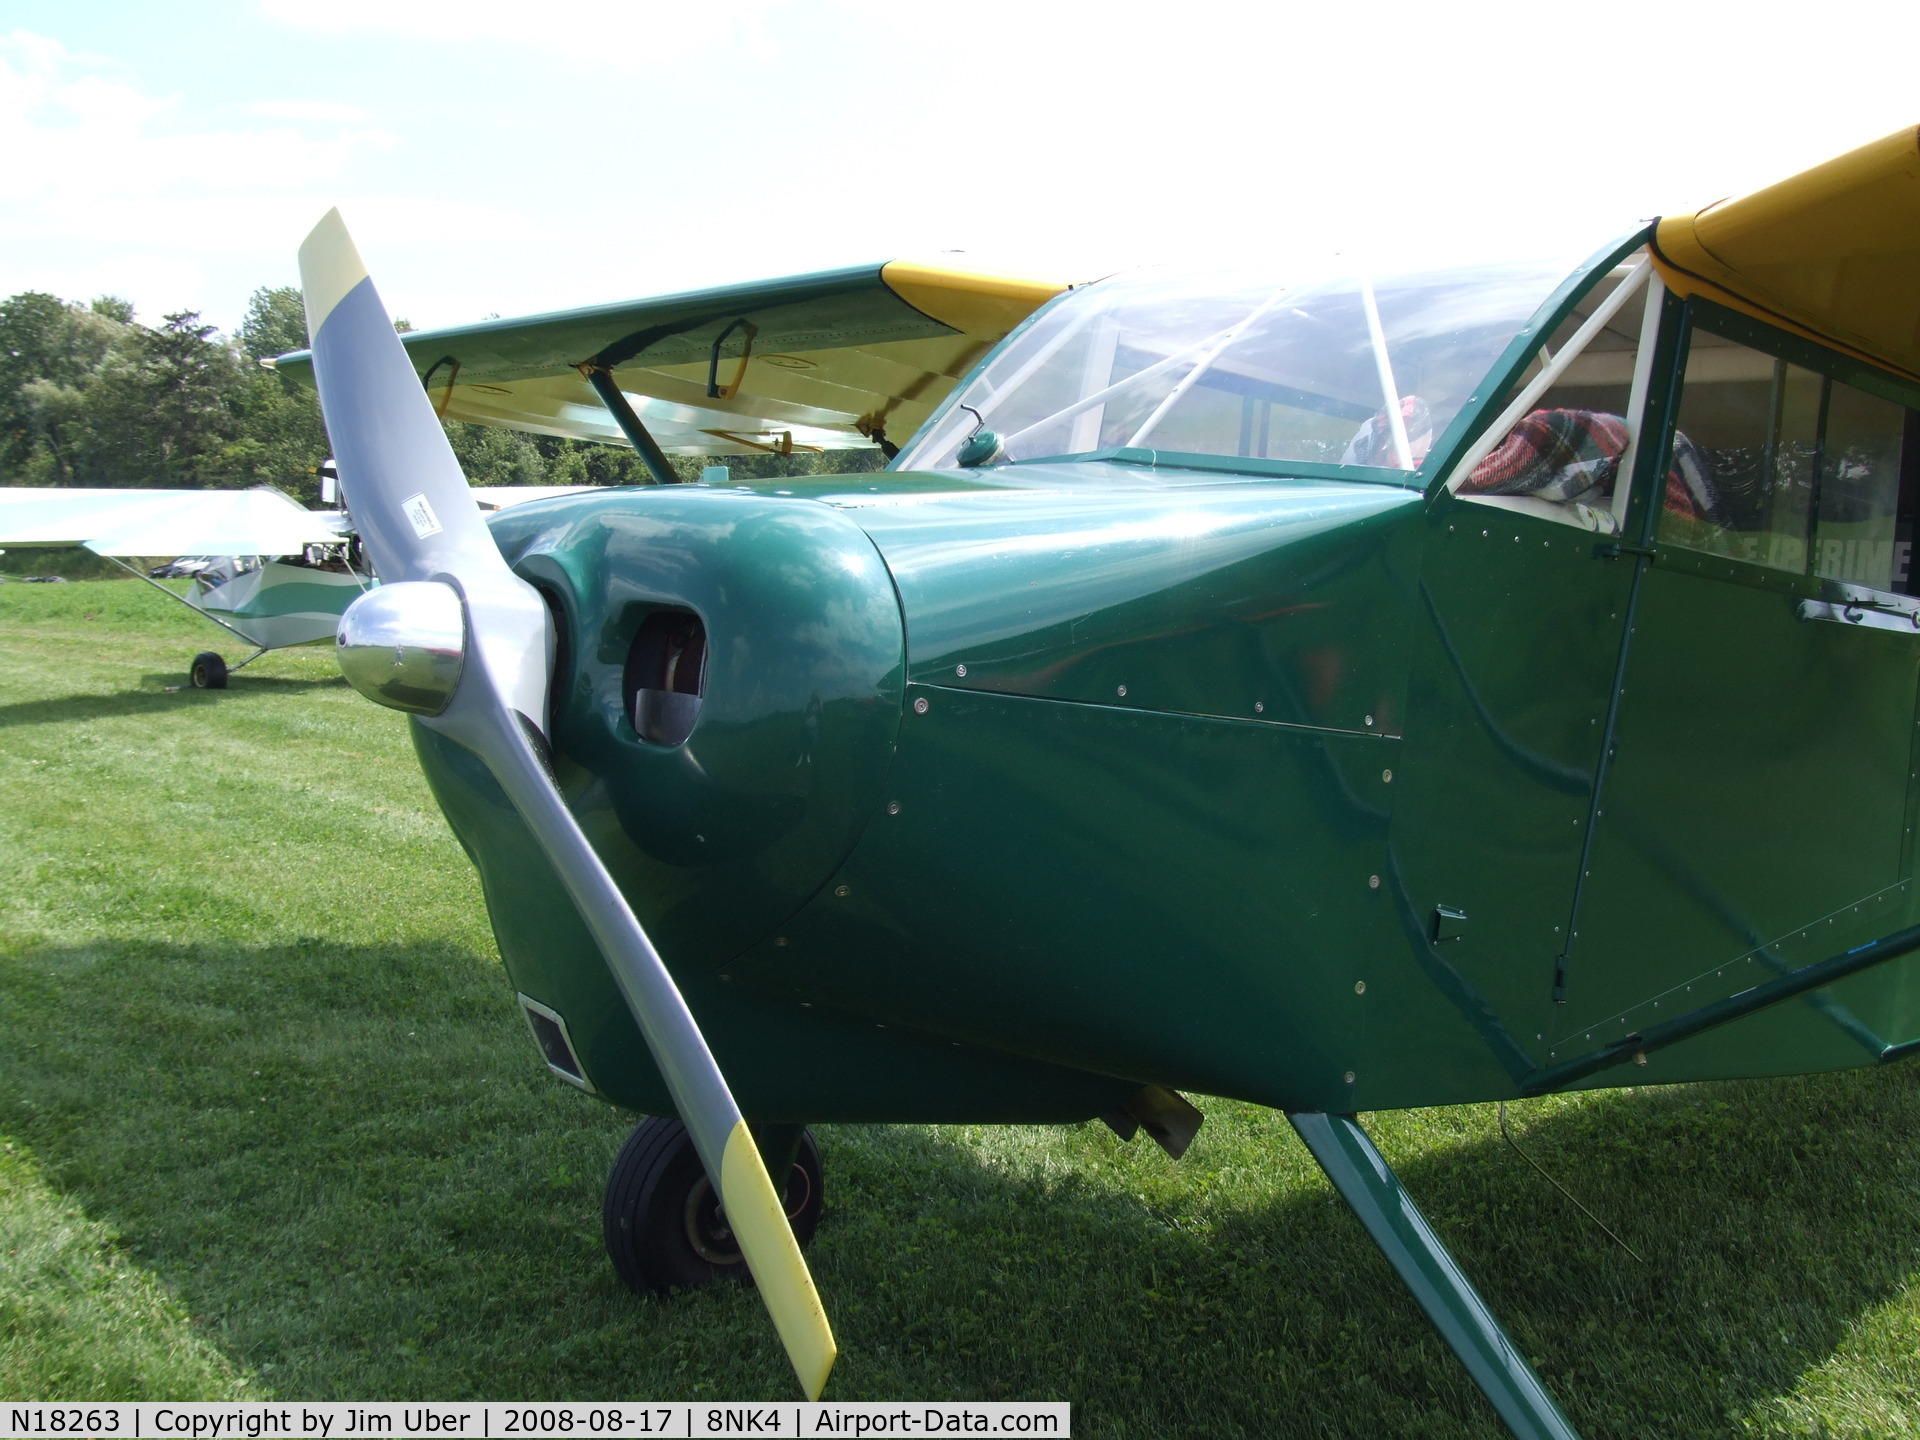 N18263, 2001 Wittman Buttercup C/N 001X, Front view of the Buttercup